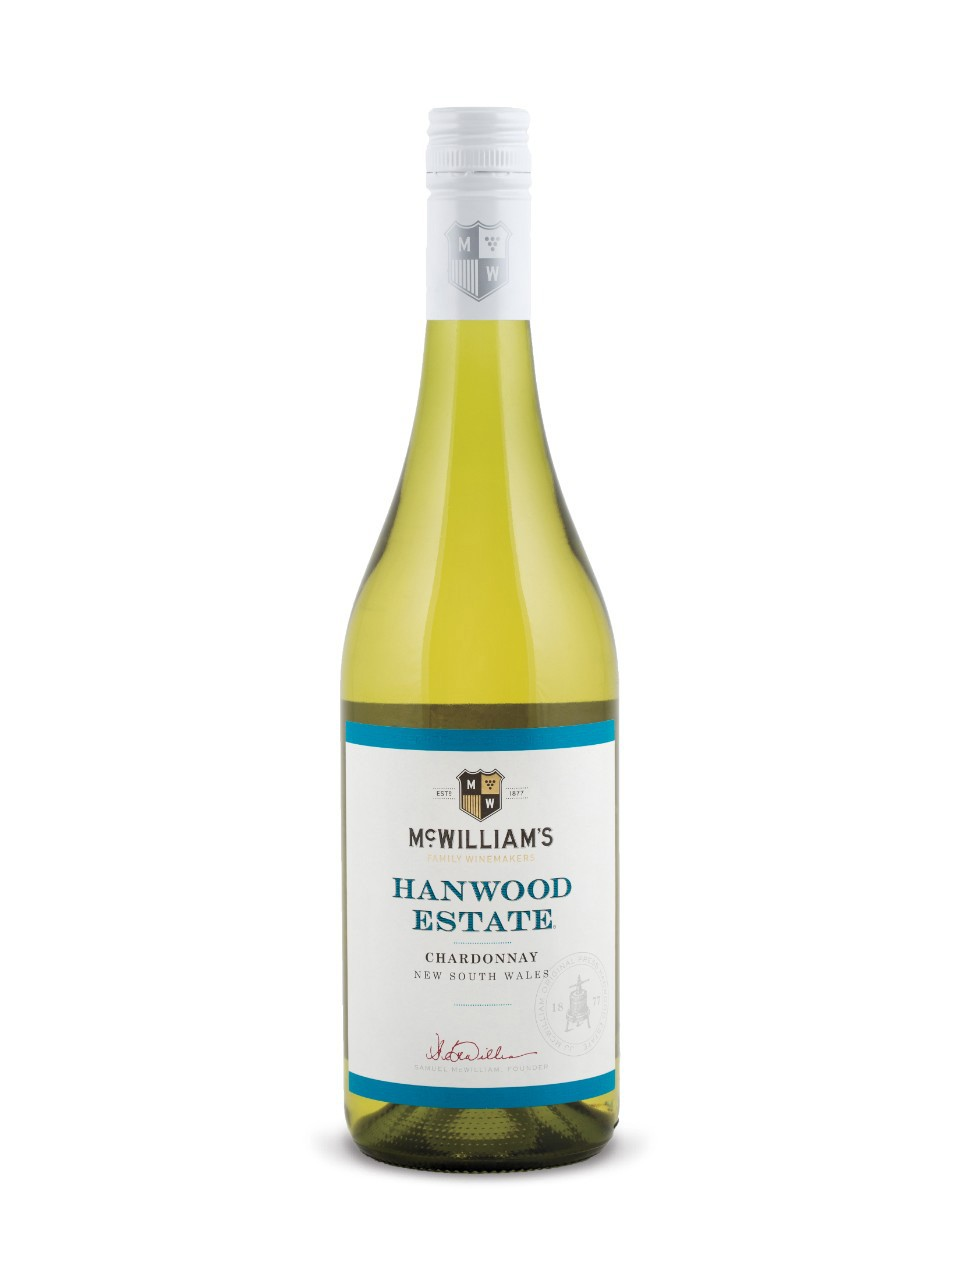 Chardonnay Hanwood Estate Mcwilliam's